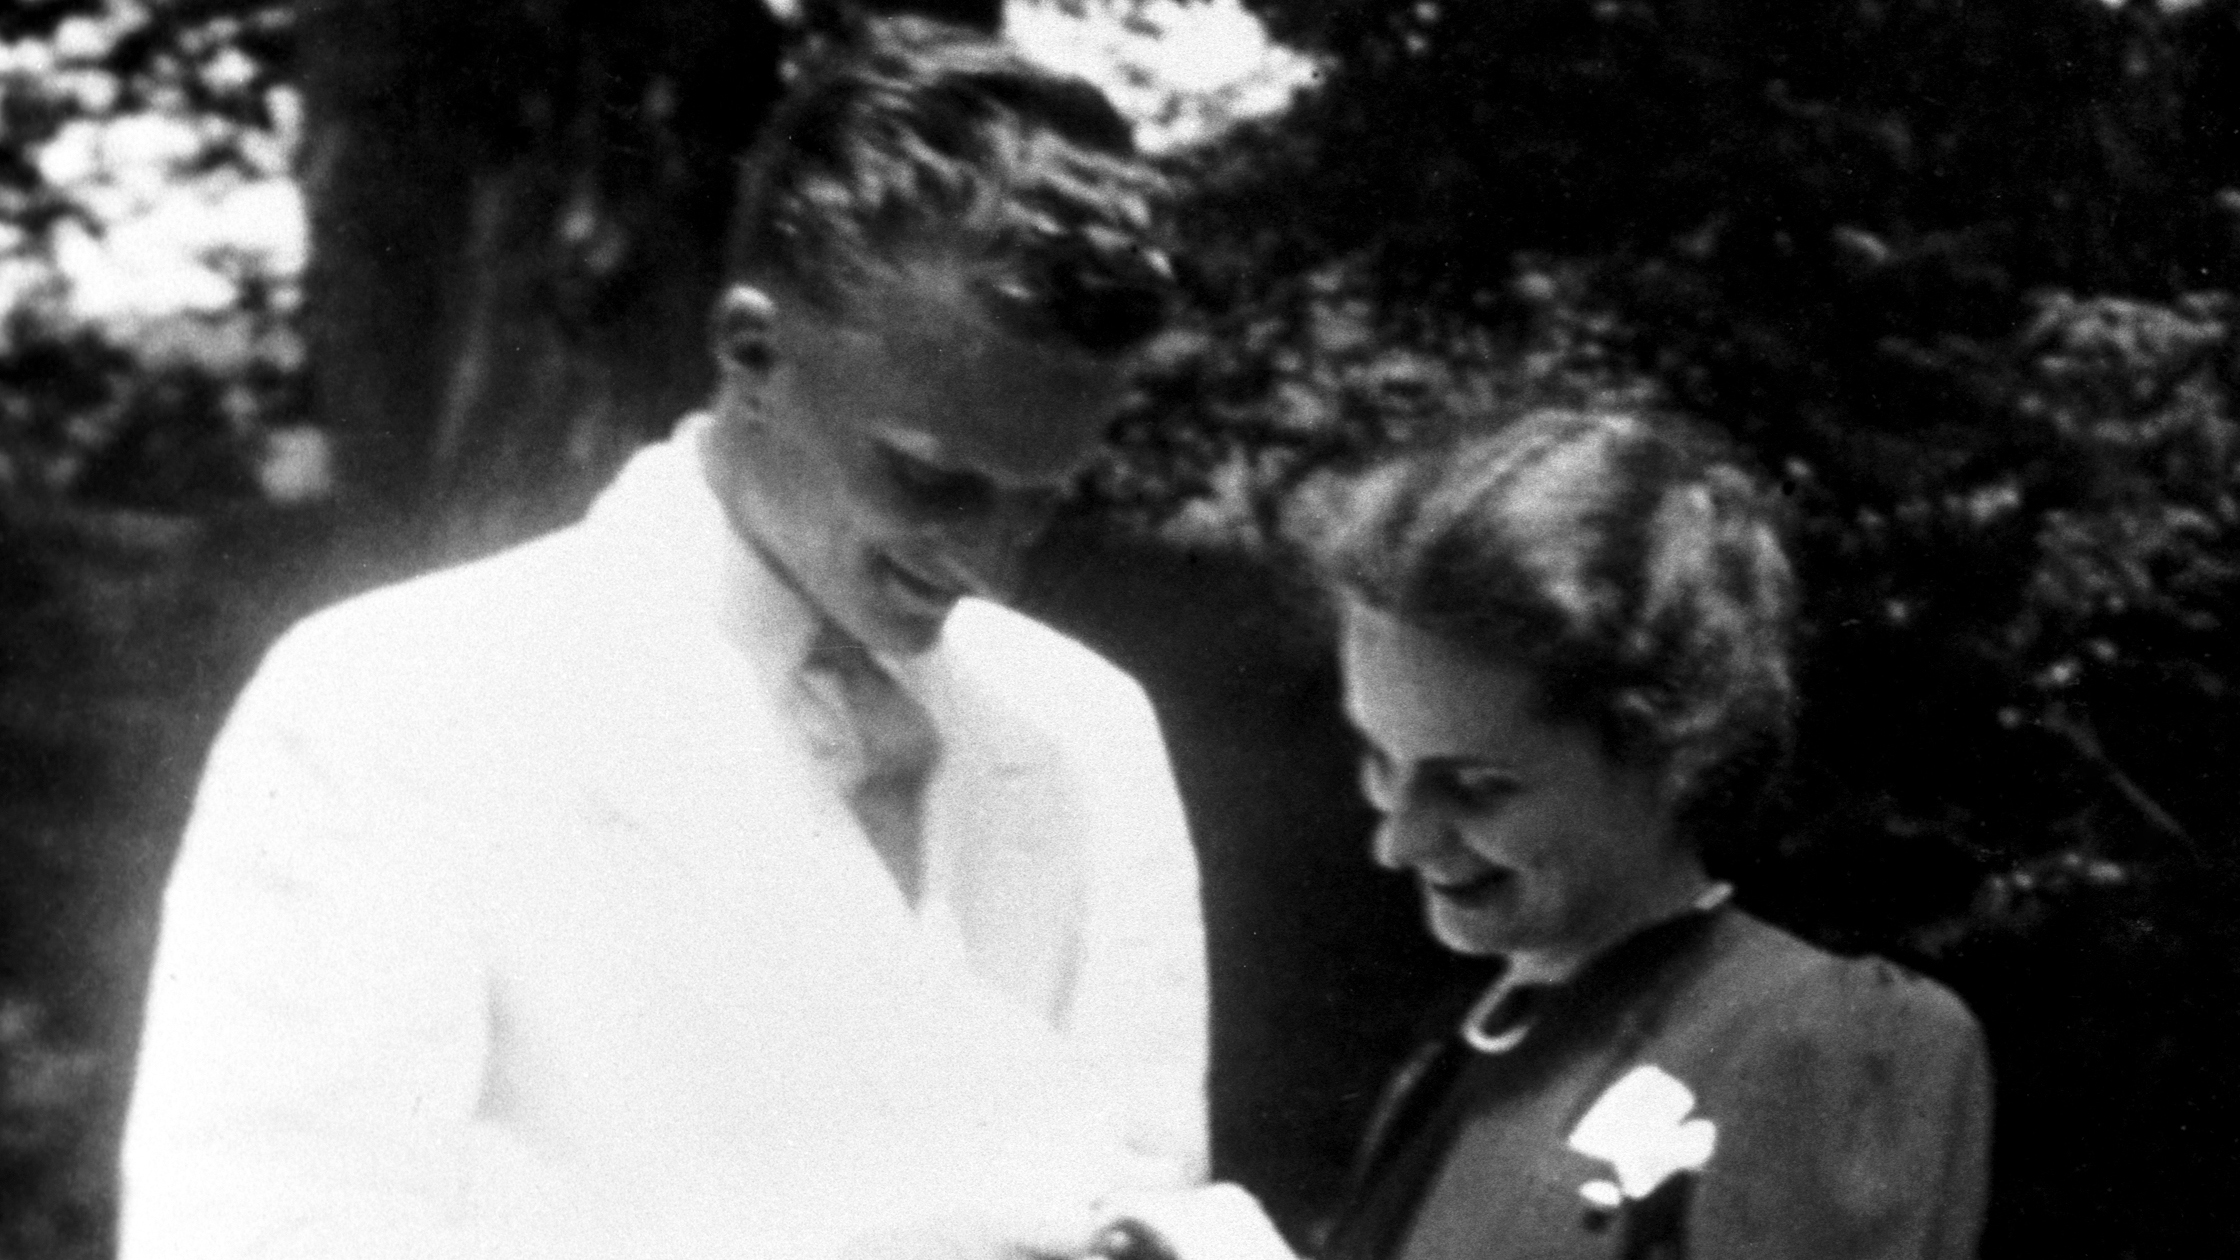 Billy thought Ruth was the woman God had long been preparing to stand beside him.  Her intelligence, practicality, wit, determination, and wholehearted love for Jesus Christ attracted him to her  not to mention that she was the campus beauty!